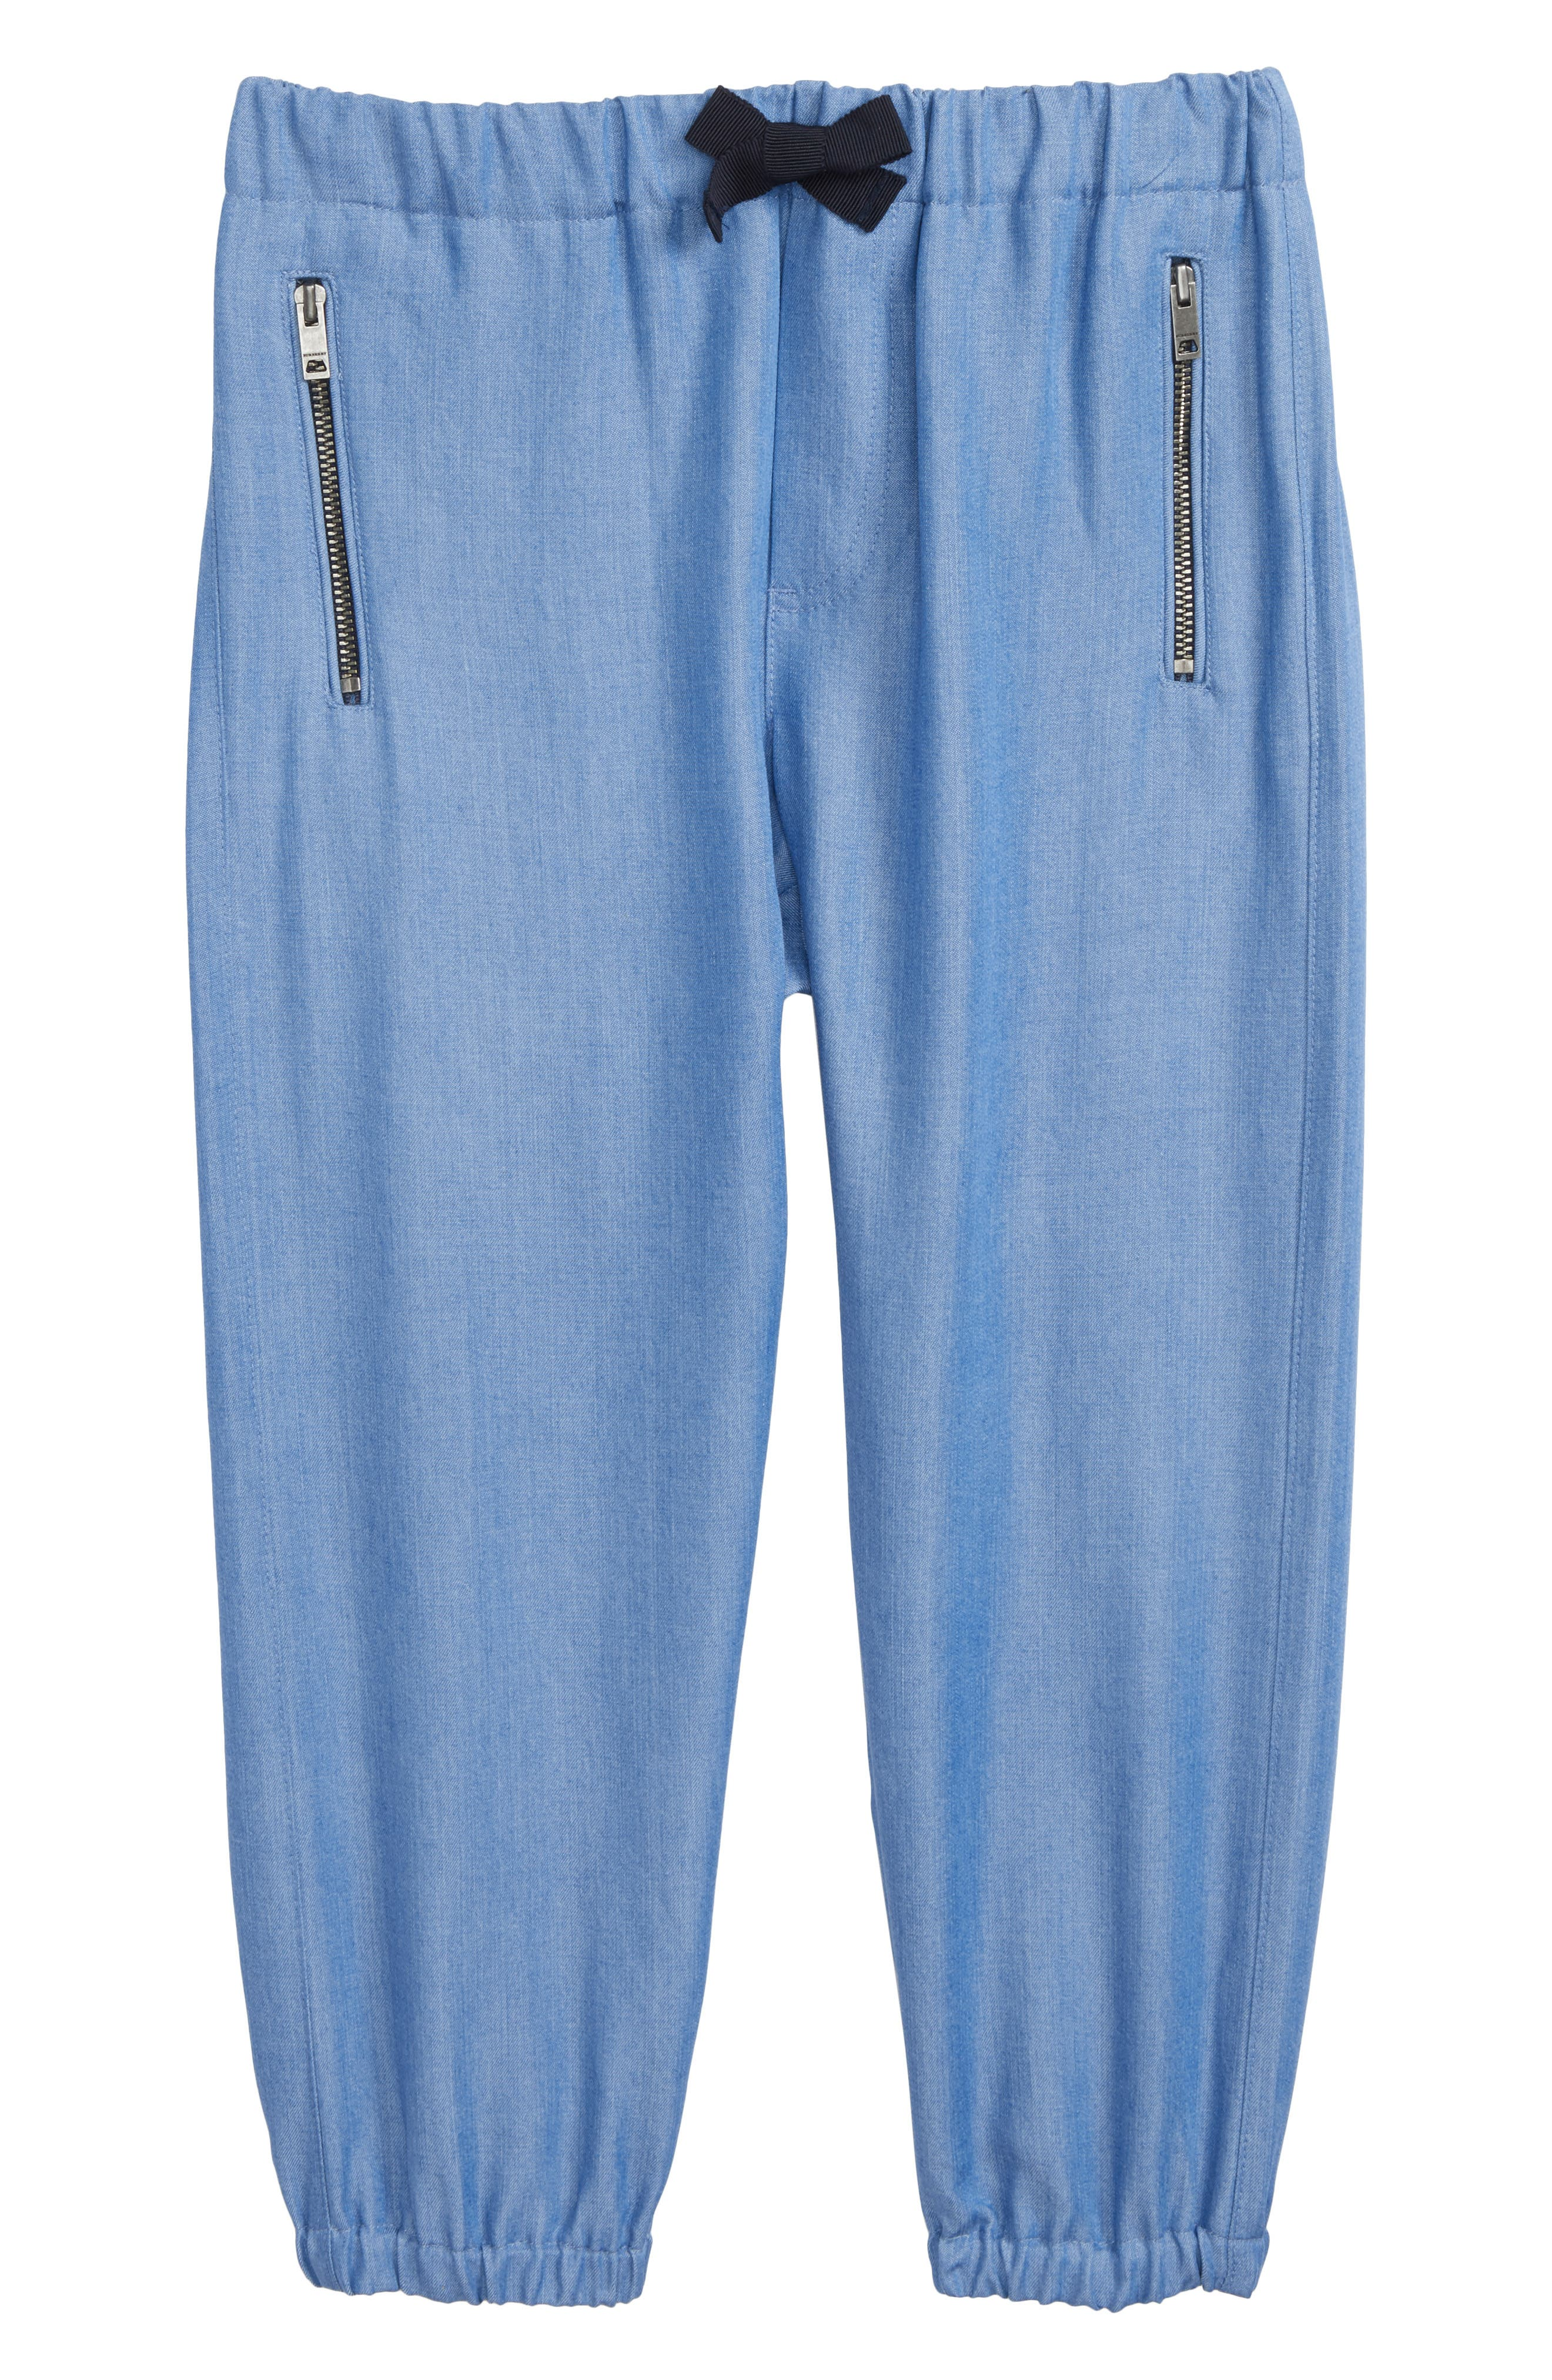 Phillie Chambray Pants,                         Main,                         color,